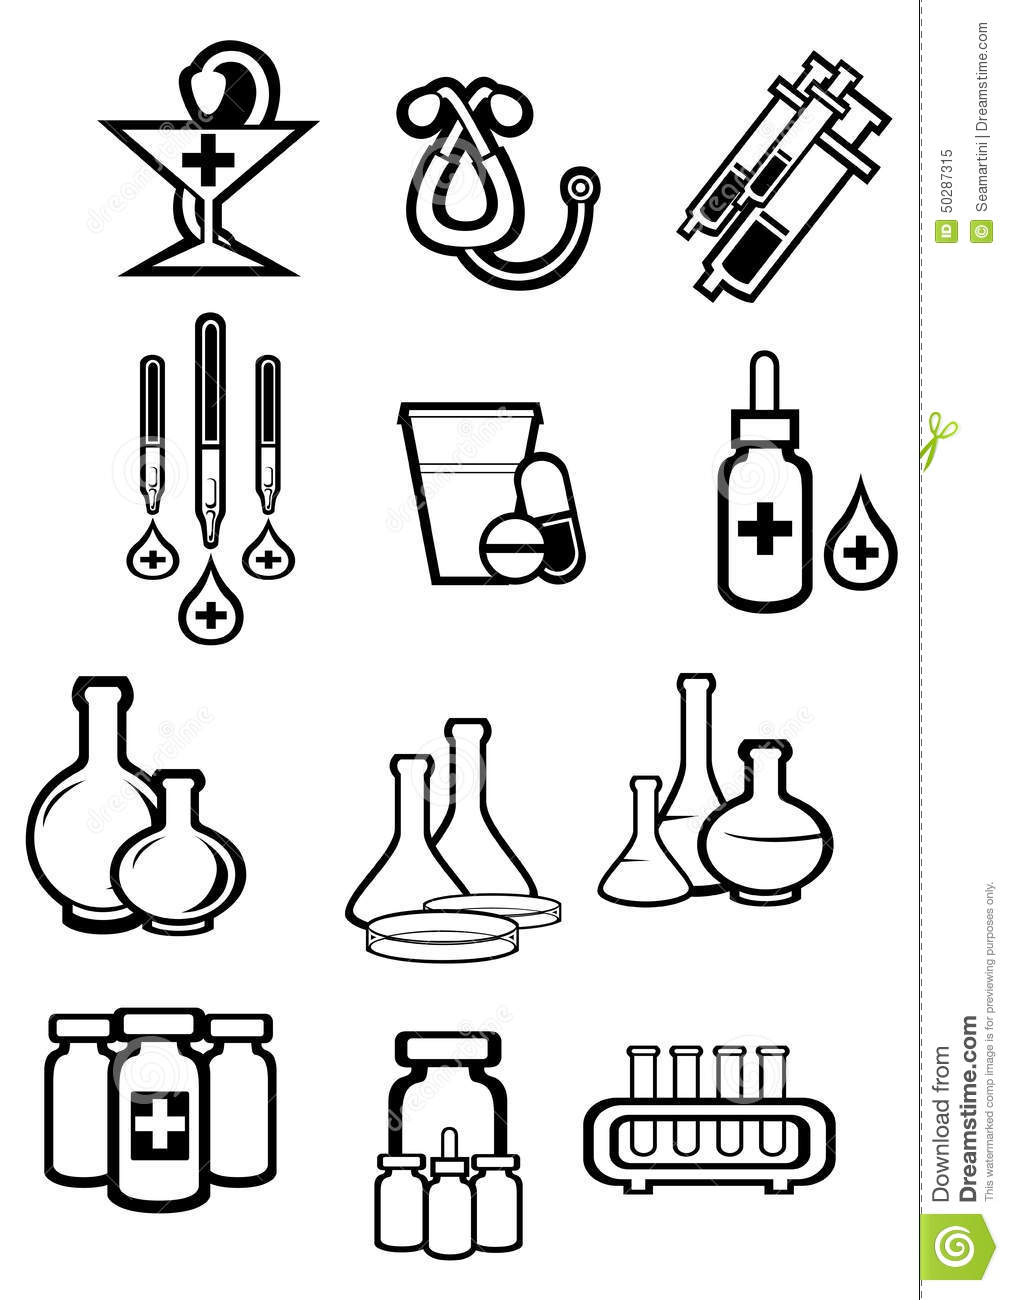 ILLICIT DRUGS (RESEARCH PROCESS OUTLINE)